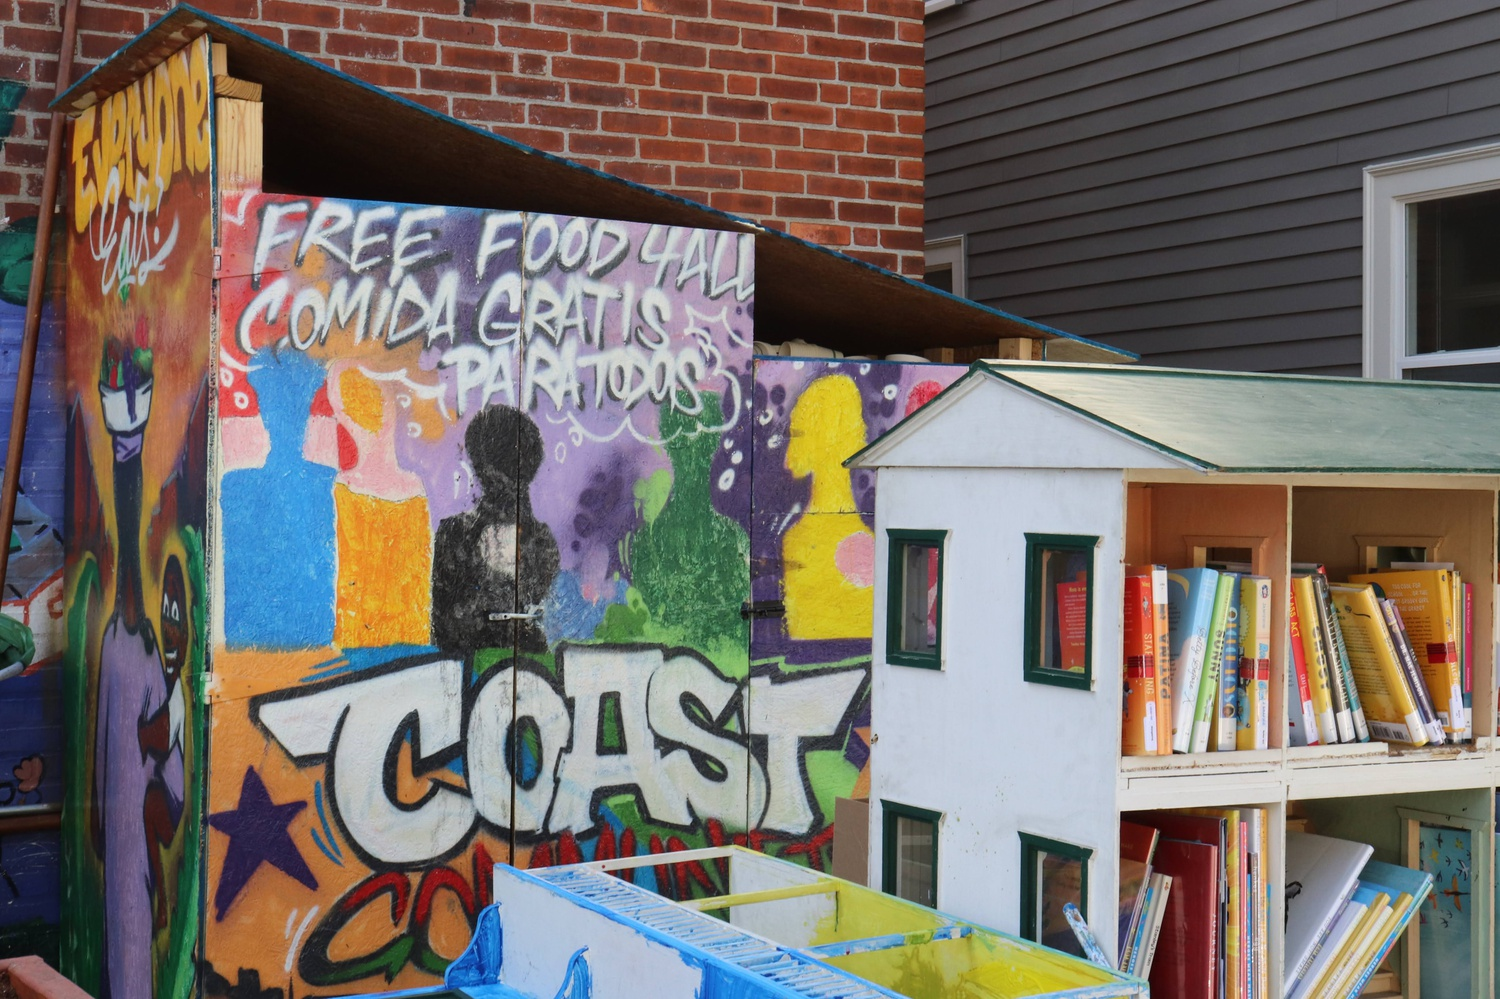 The Coast Community Fridge is located outside of the Cambridge Community Center. It is an initiative of the Cambridge City Growers, a group founded in April 2020.